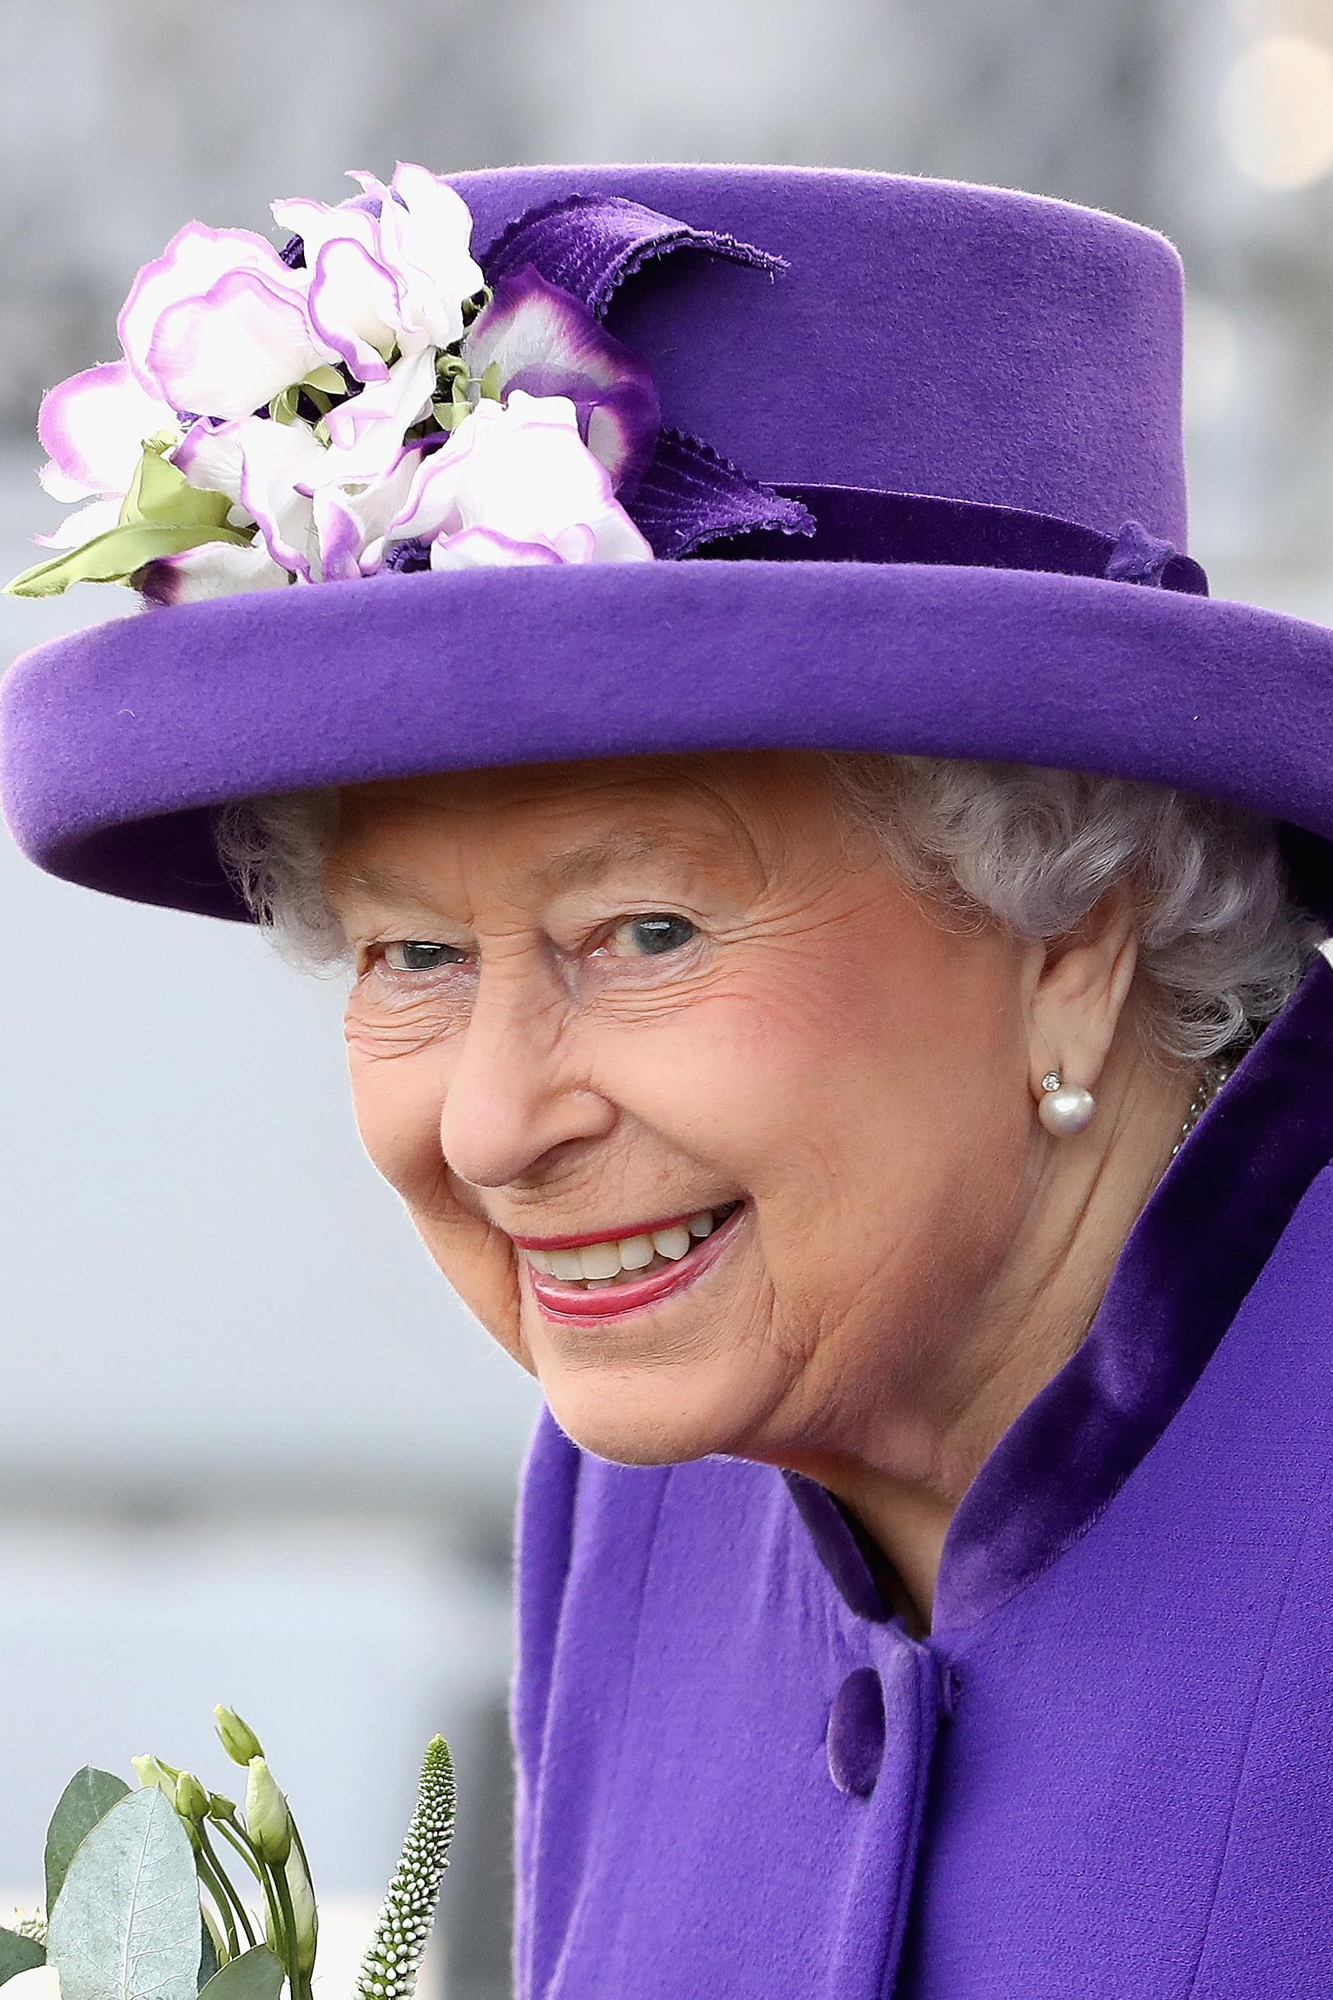 The Reason People Can't Stop Reading Queen Elizabeth's Wikipedia Page